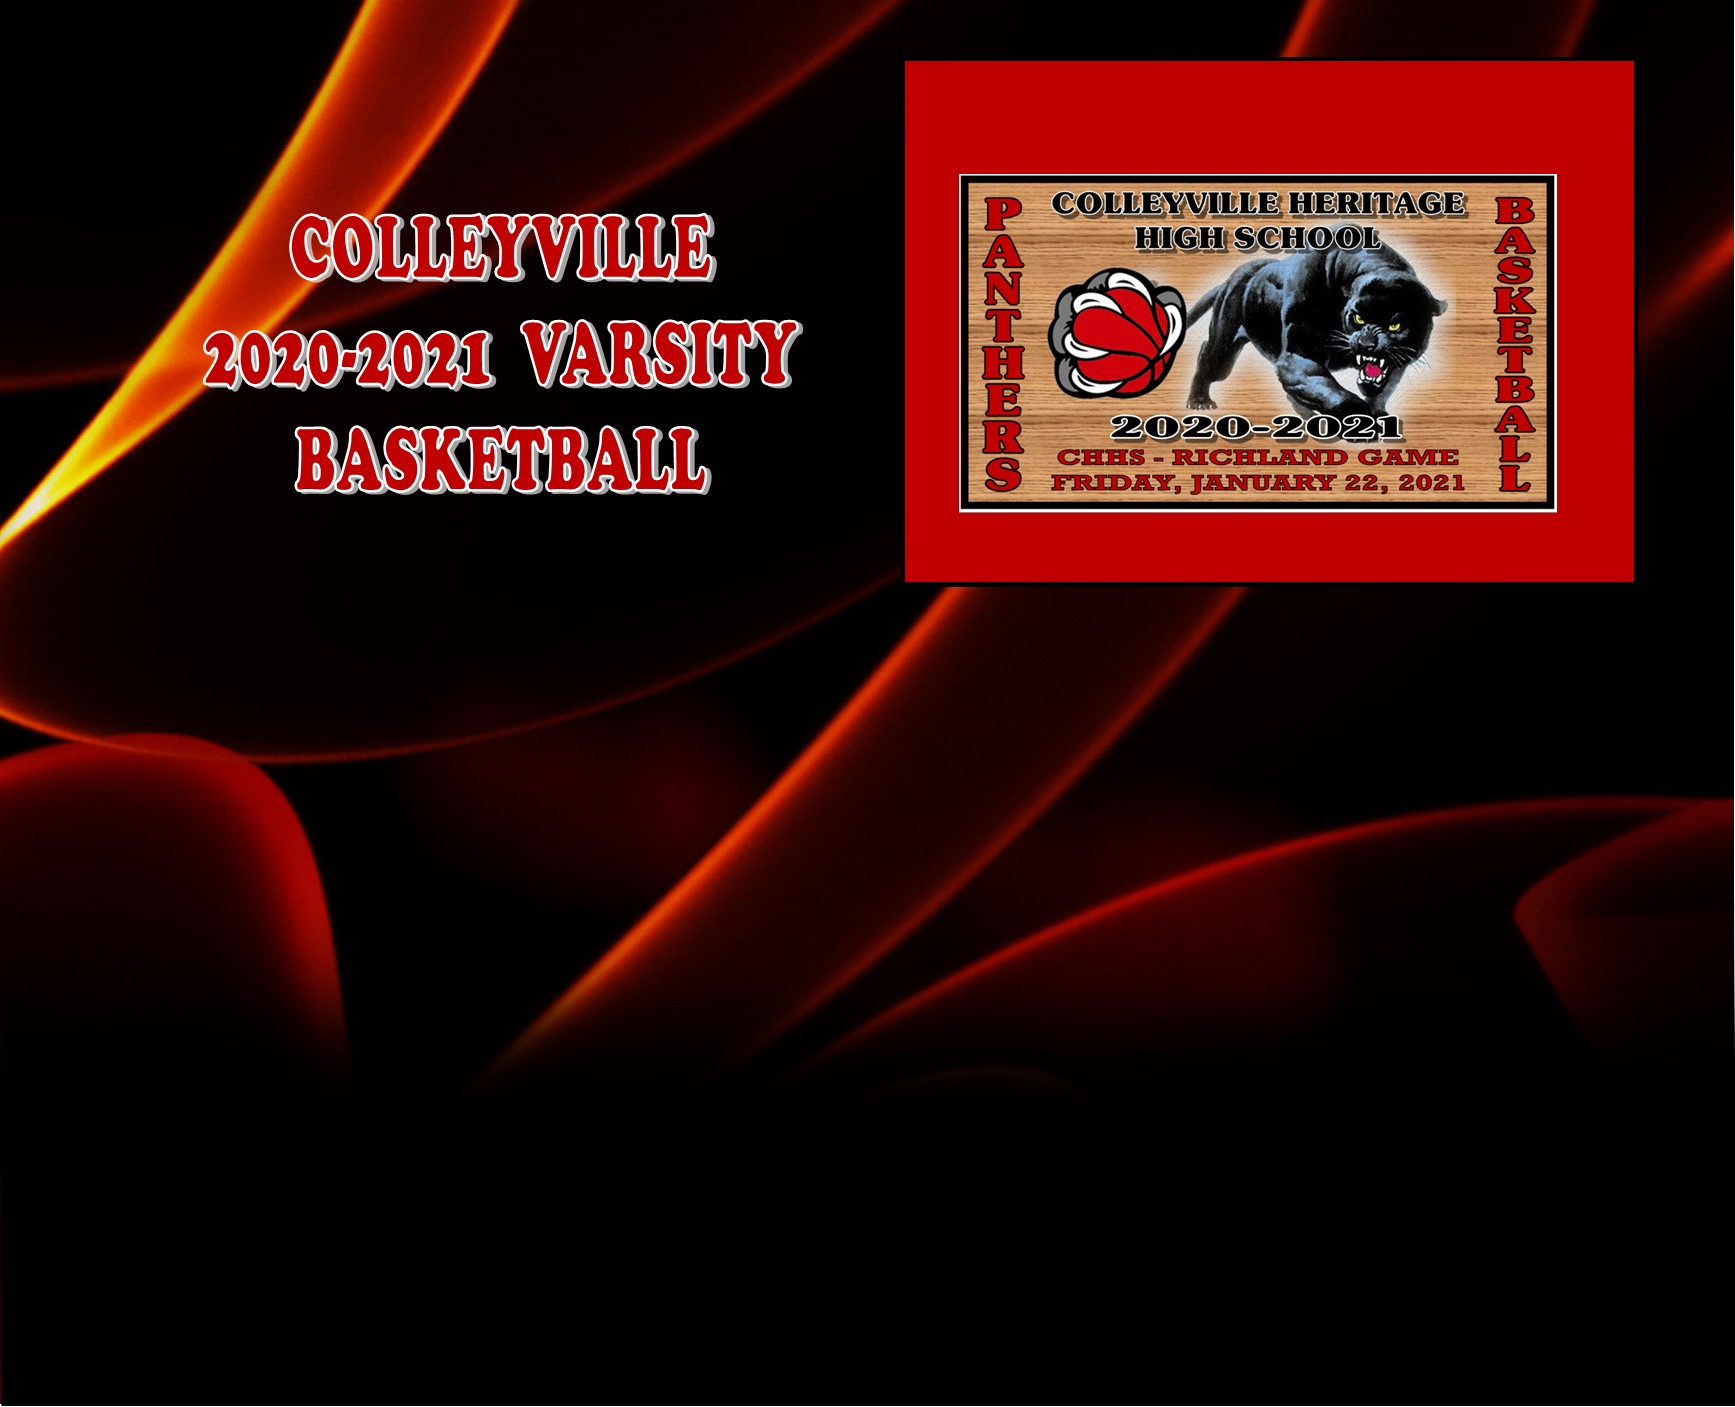 GCISD Basketball: Colleyville Panthers Shut Down By Richland Royals 36-54